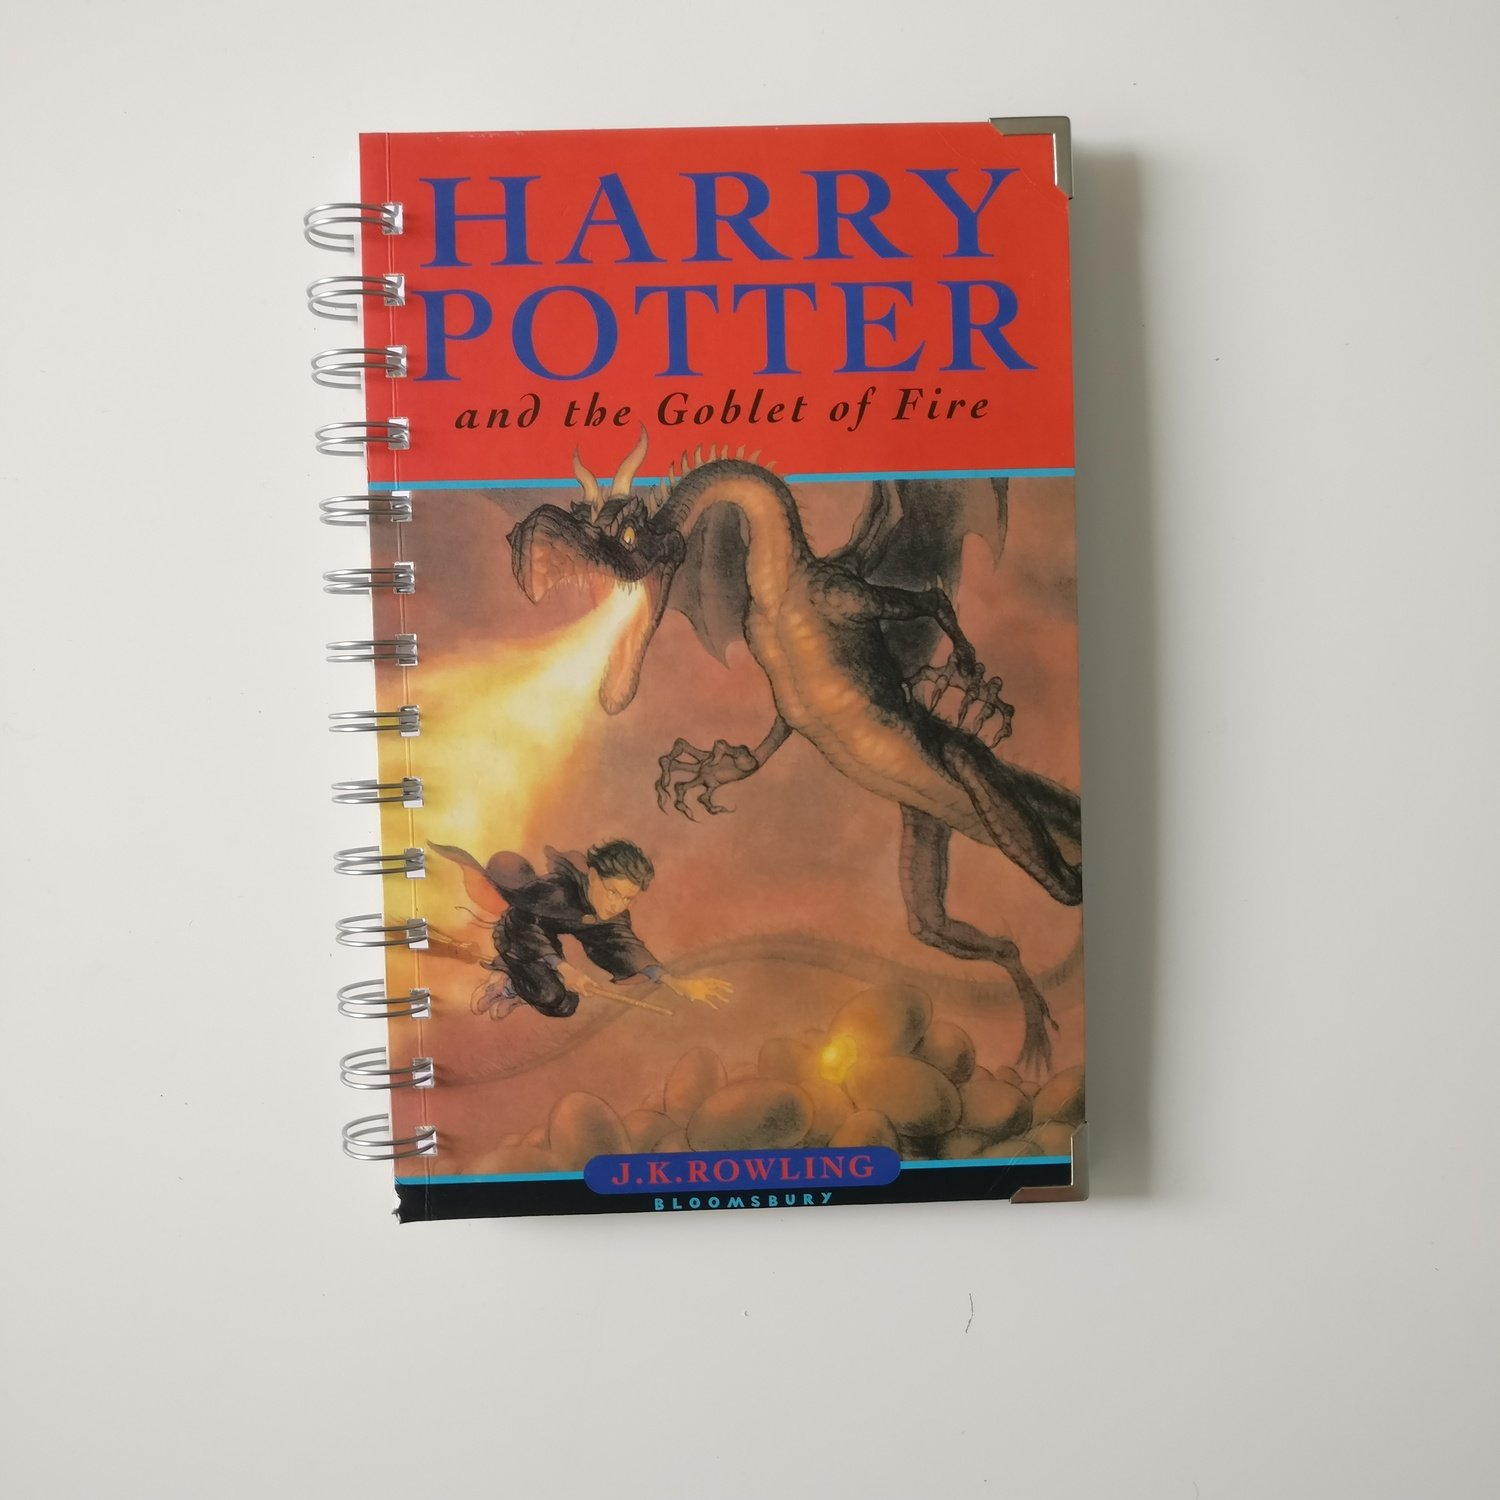 Harry Potter and the Goblet of Fire Notebook made from a paperback book